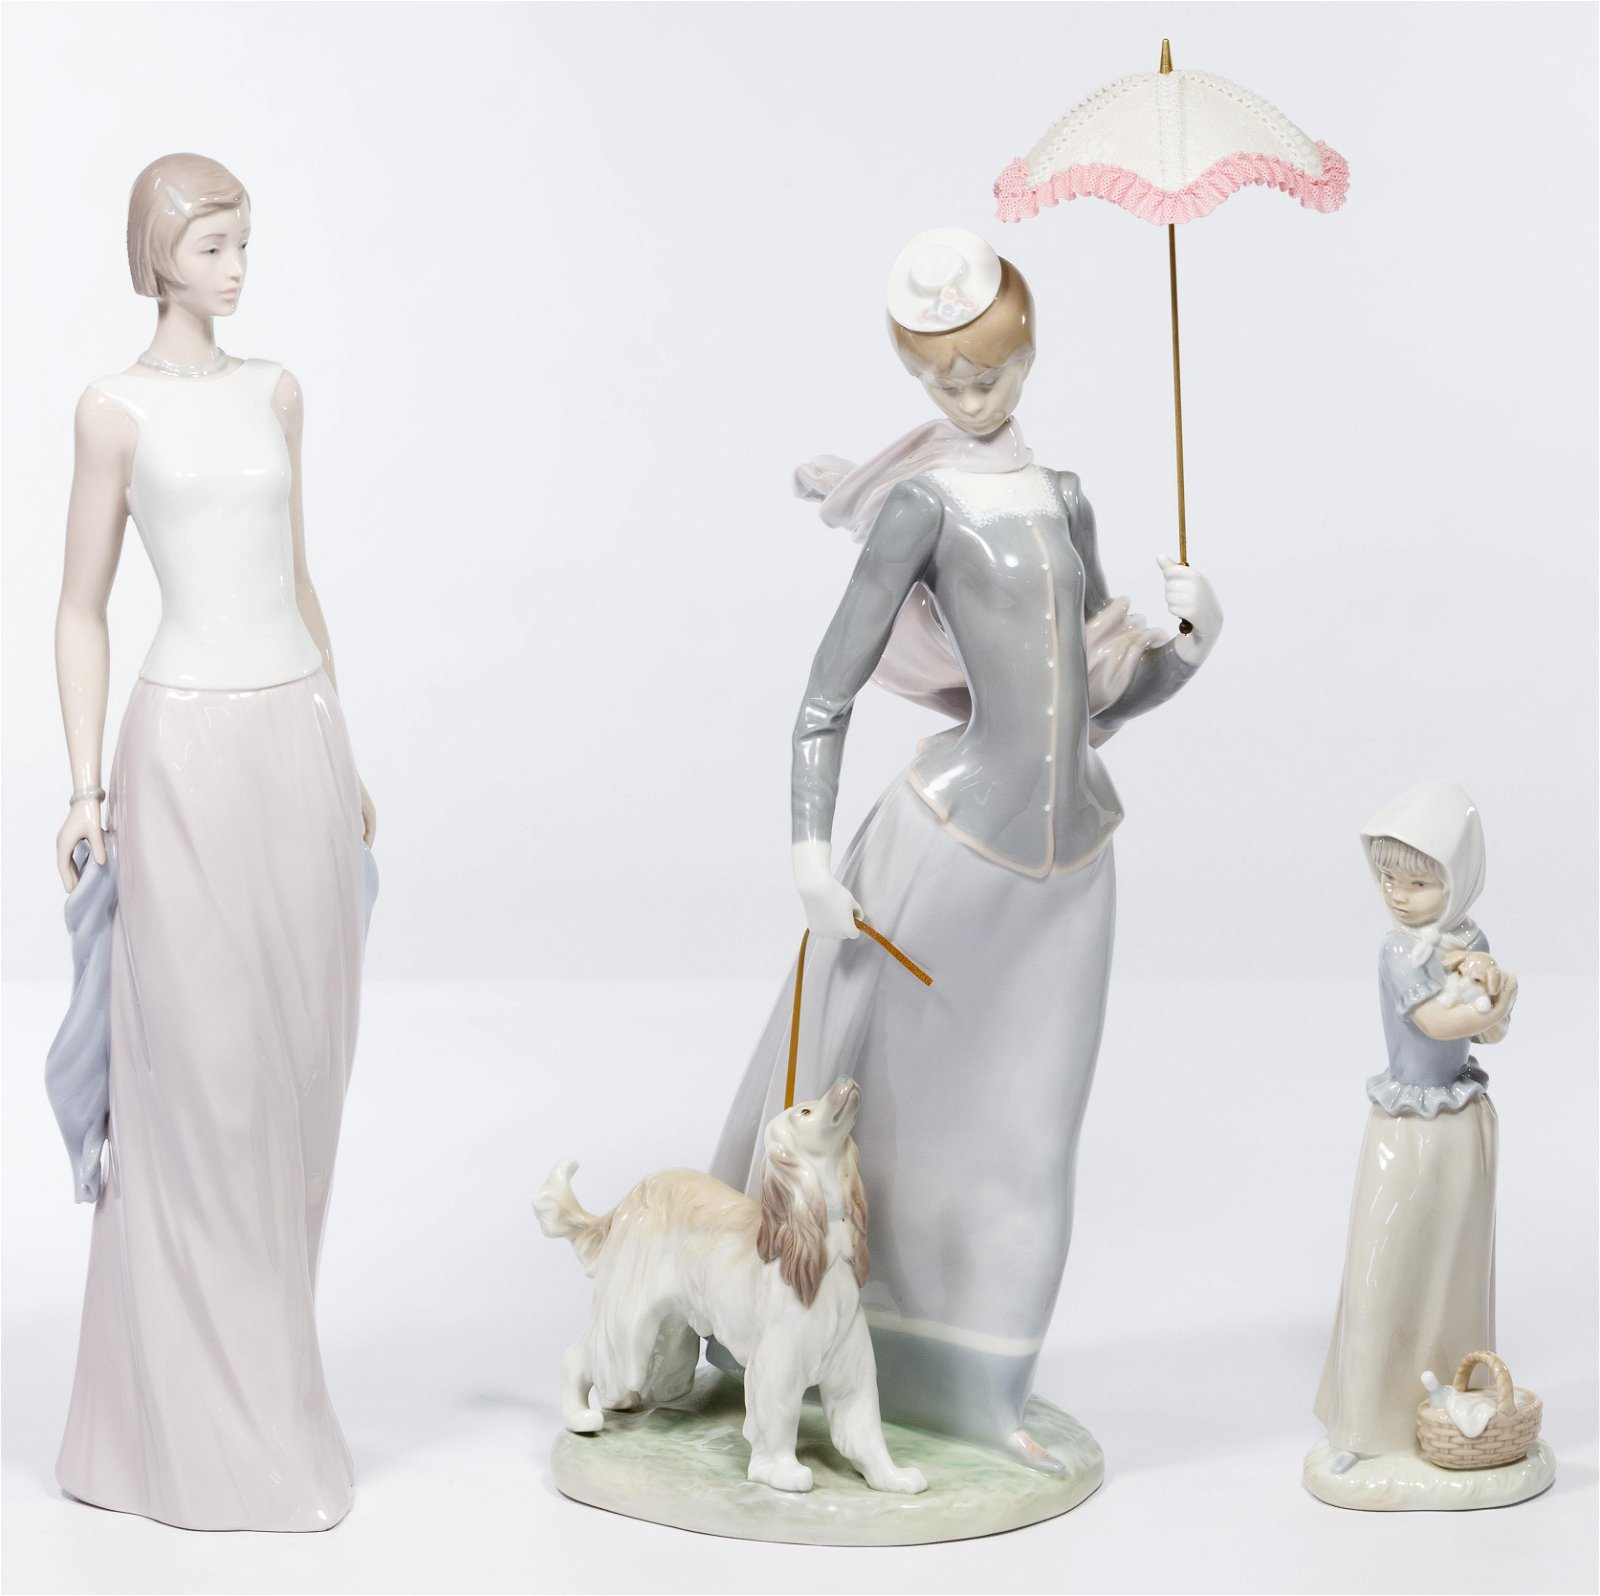 Lladro and Nao by Lladro Figurine Assortment